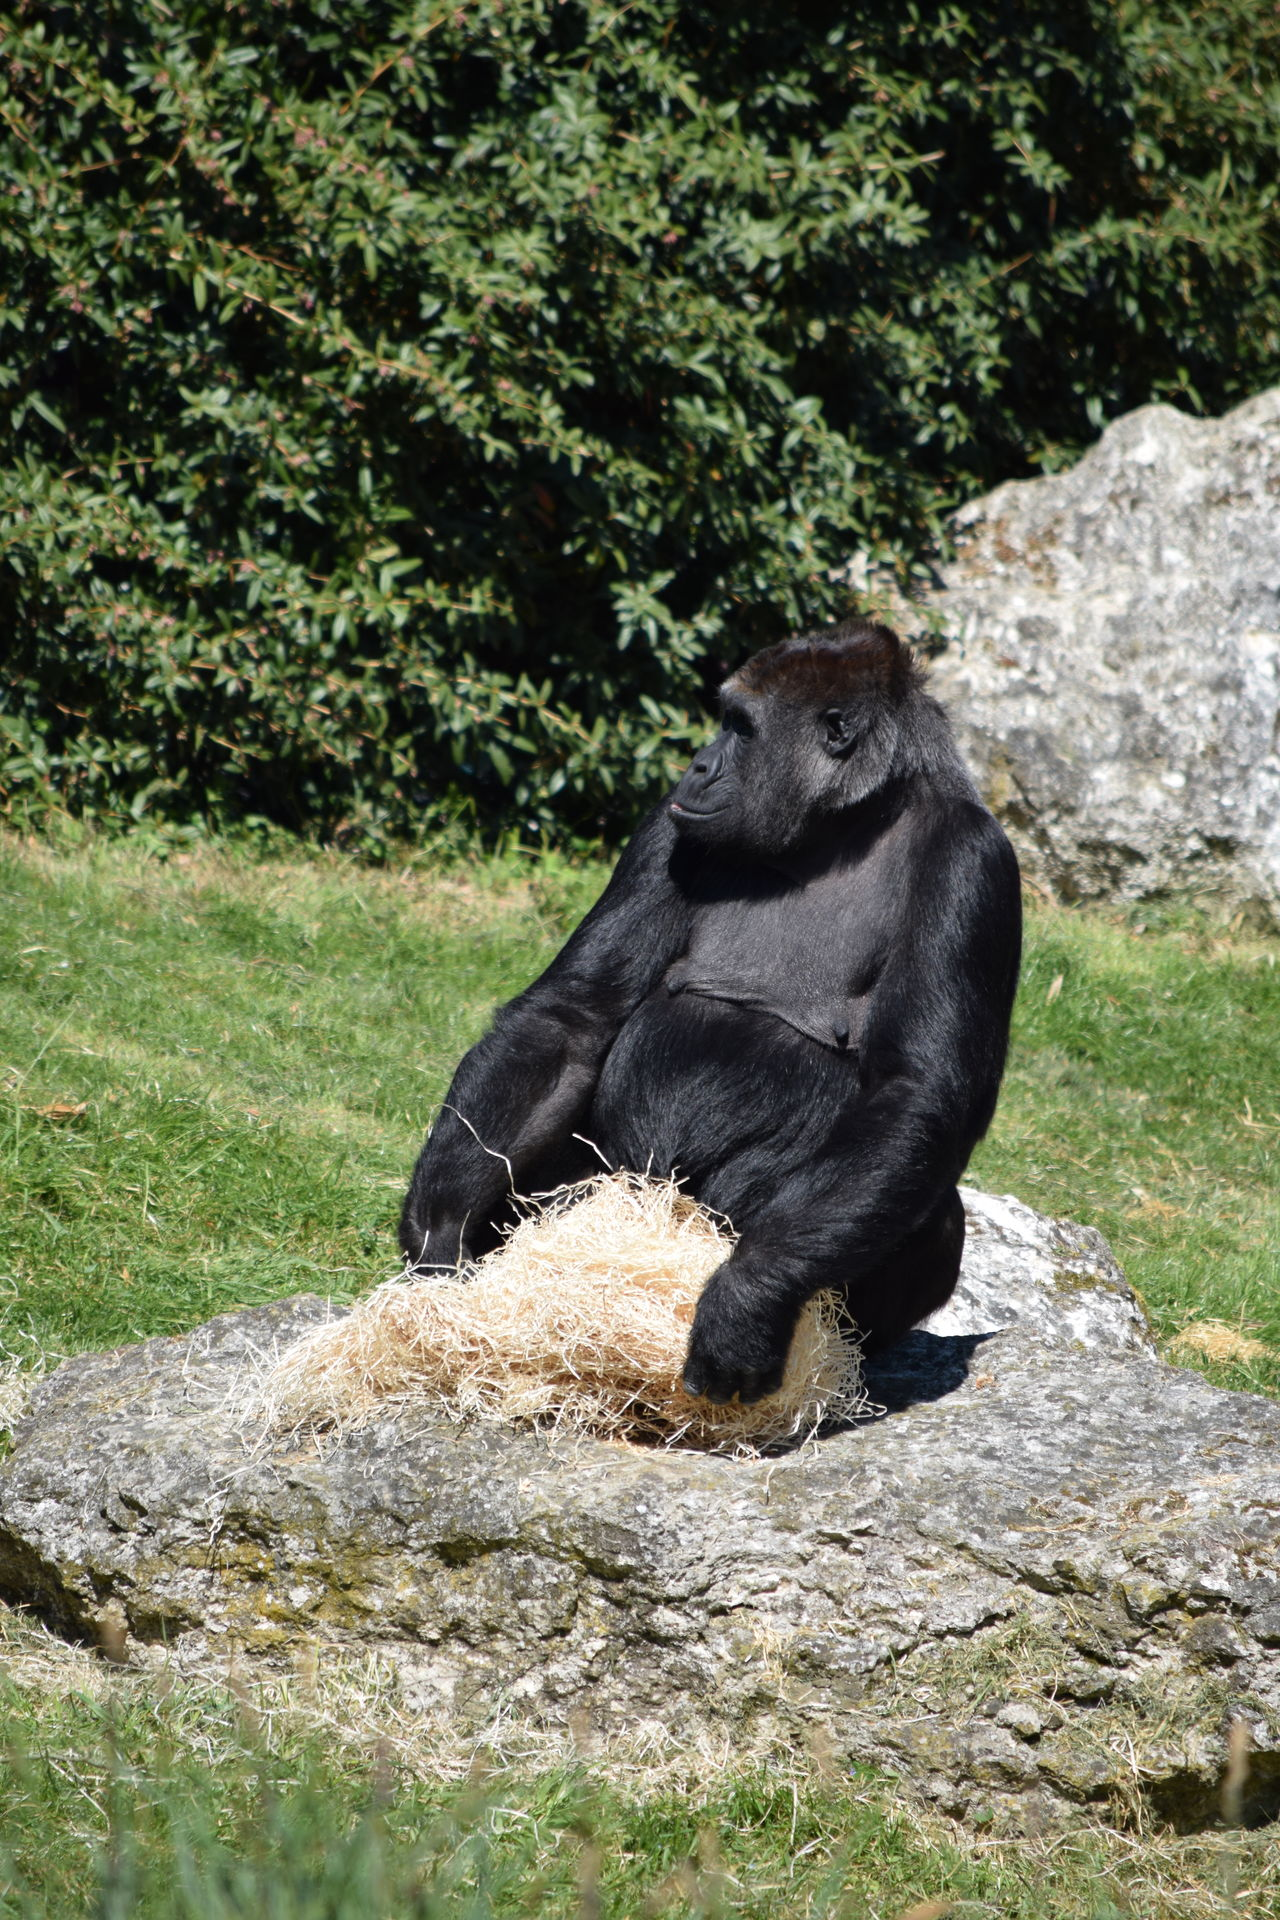 gorilla Animal Themes Animal Wildlife Animals In The Wild Beauval Day Female Full Length Gorilla Gorille Grass Green Male Mammal Monkey Nature No People One Animal Outdoors Power Primate Rock - Object Sitting Strong Zoo